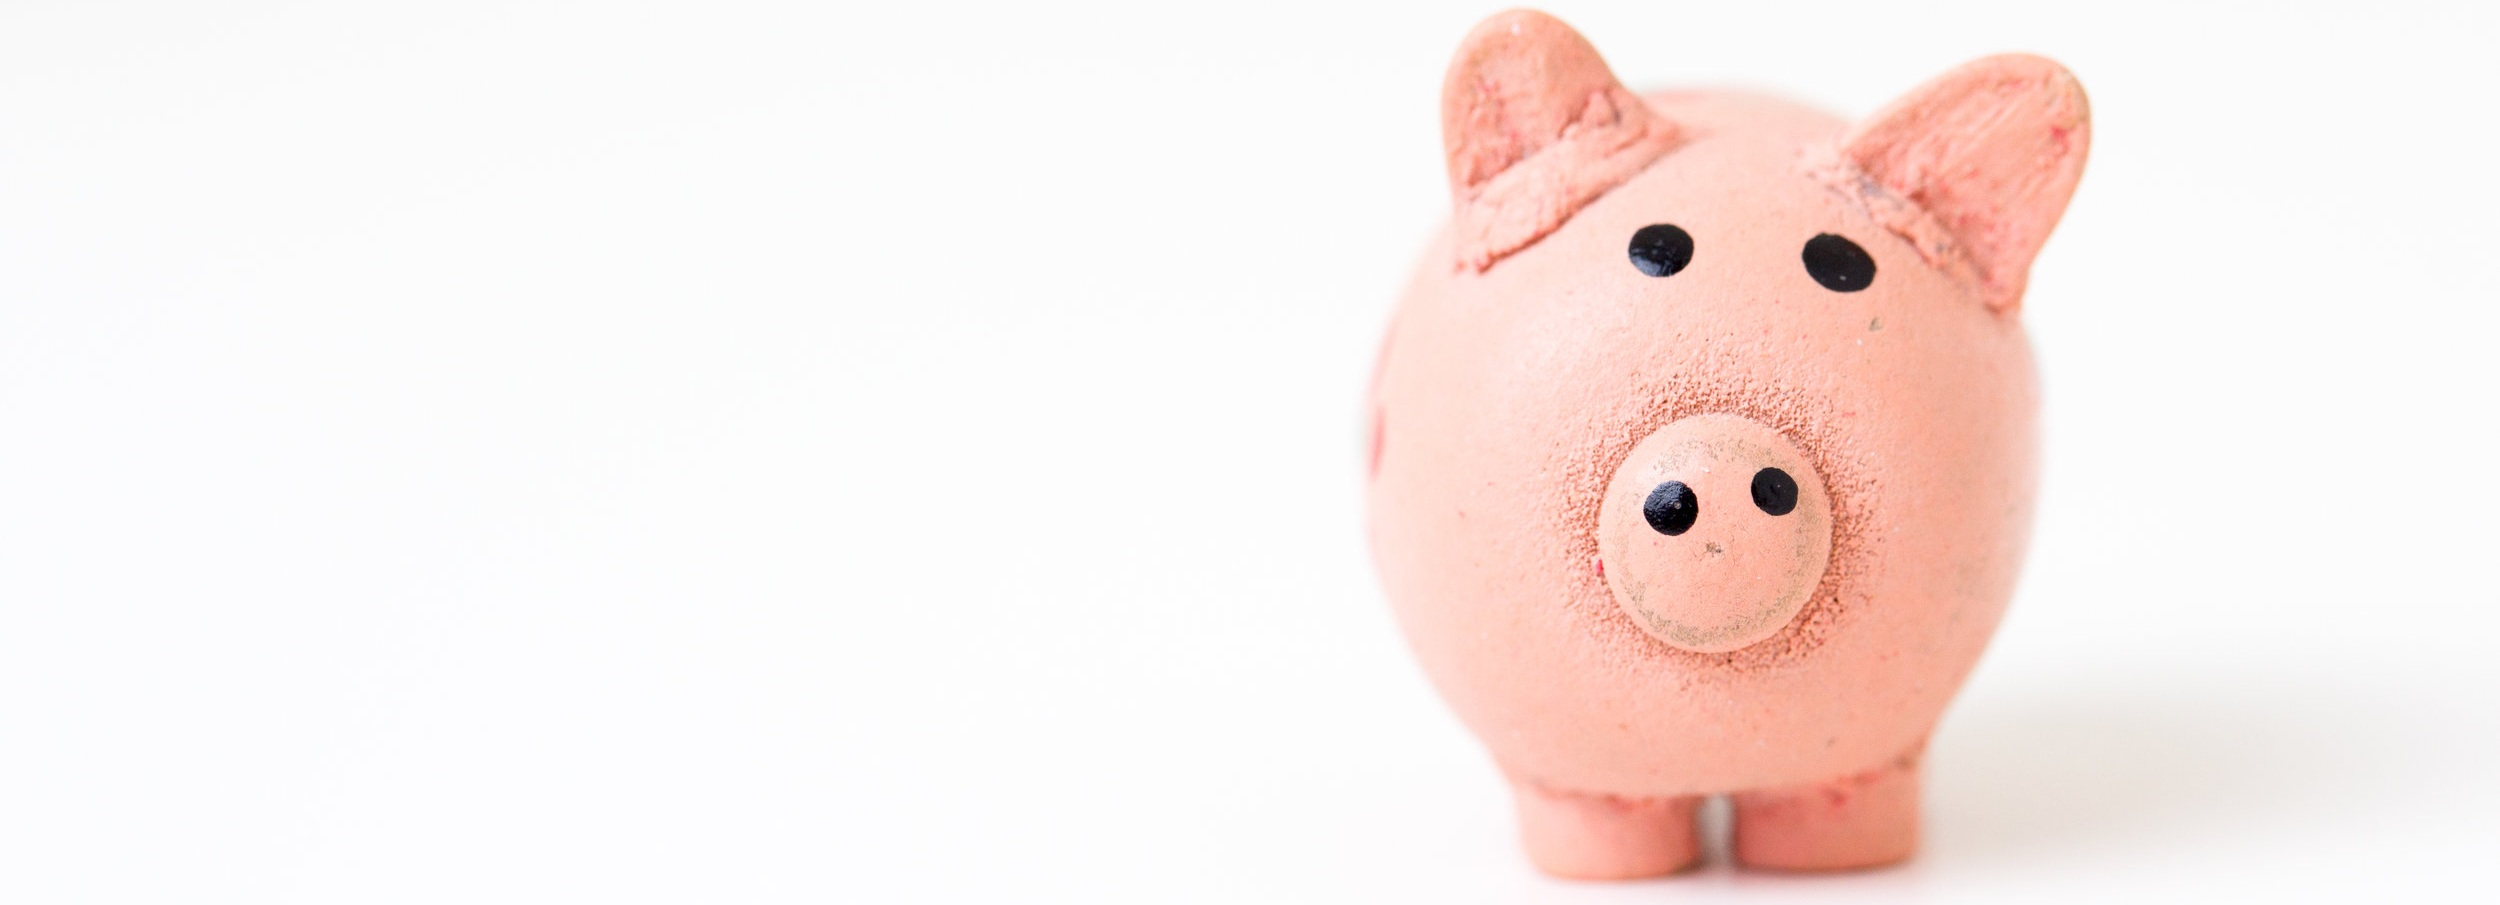 Worried about money and how to manage your budget? -